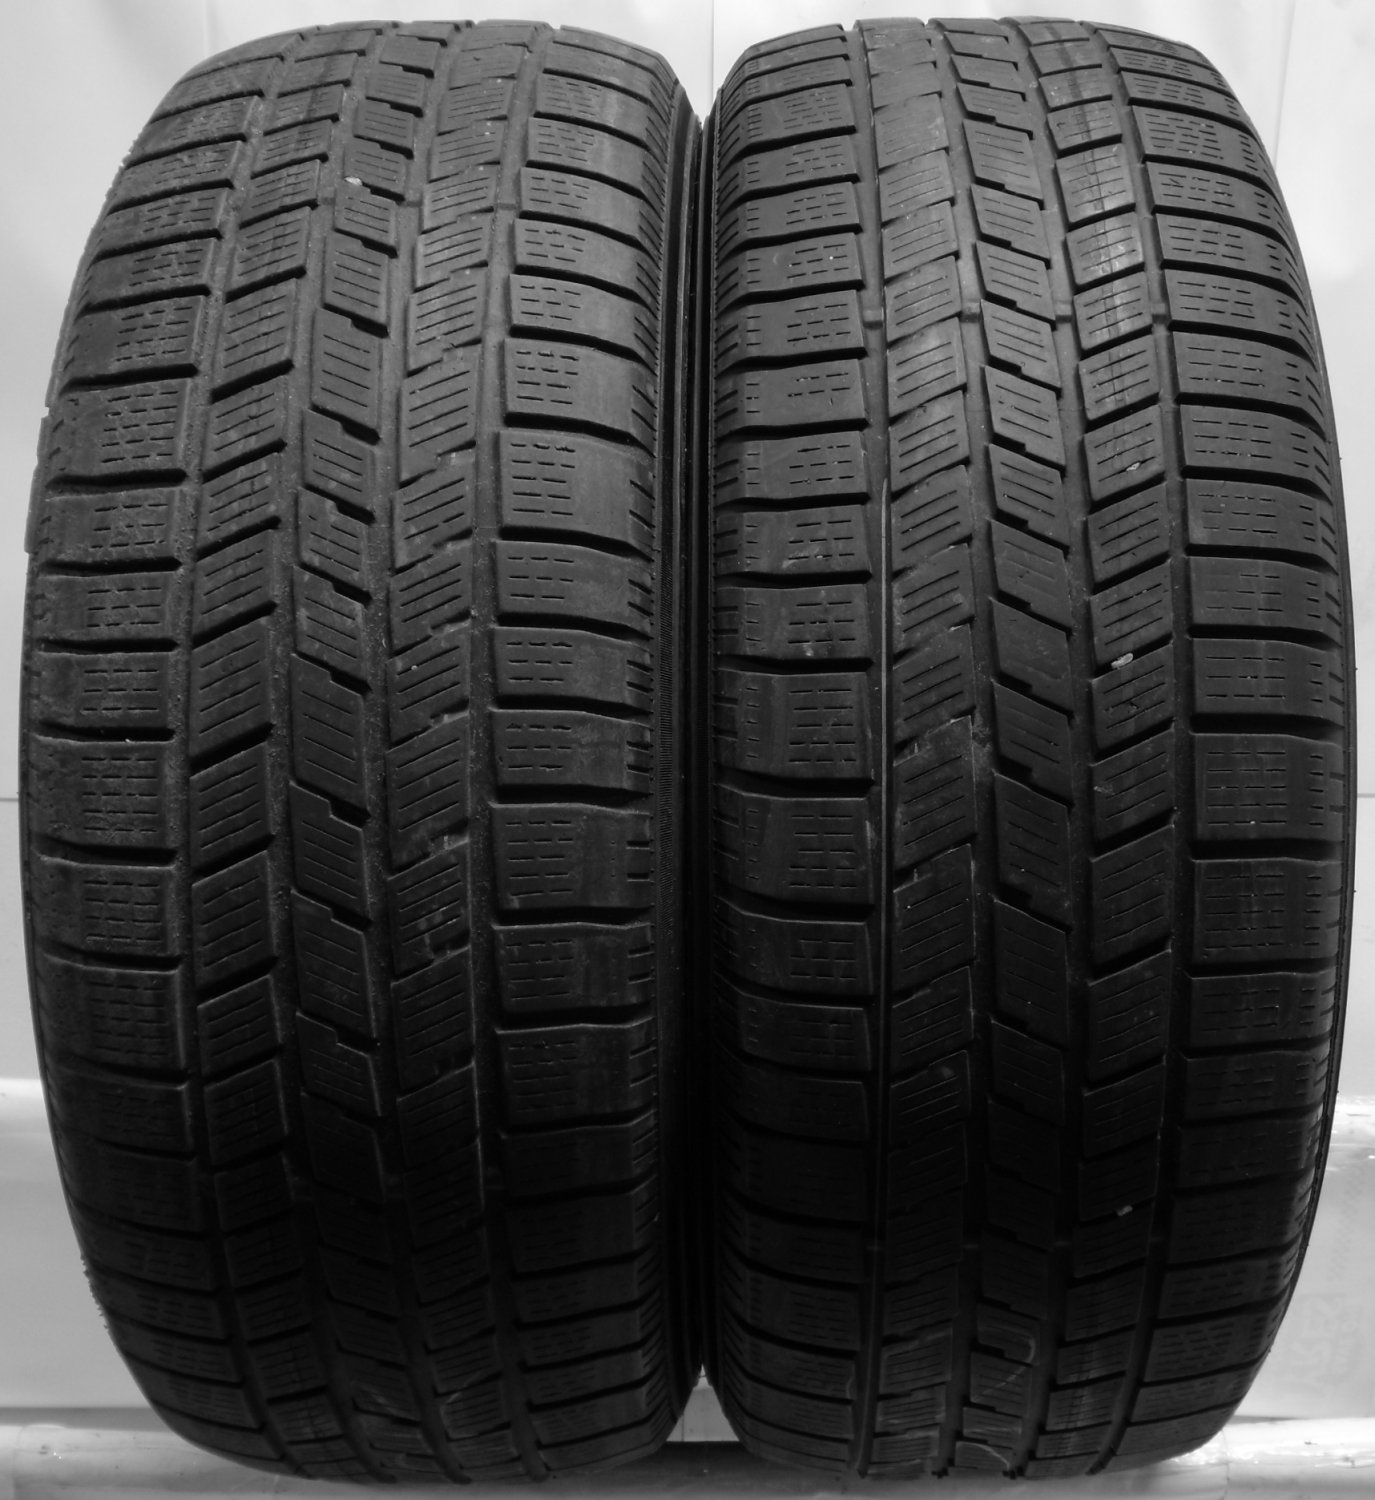 2 2356517 pirelli 235 65 17 used part worn scorpion car tyres winter m0 ice snow. Black Bedroom Furniture Sets. Home Design Ideas